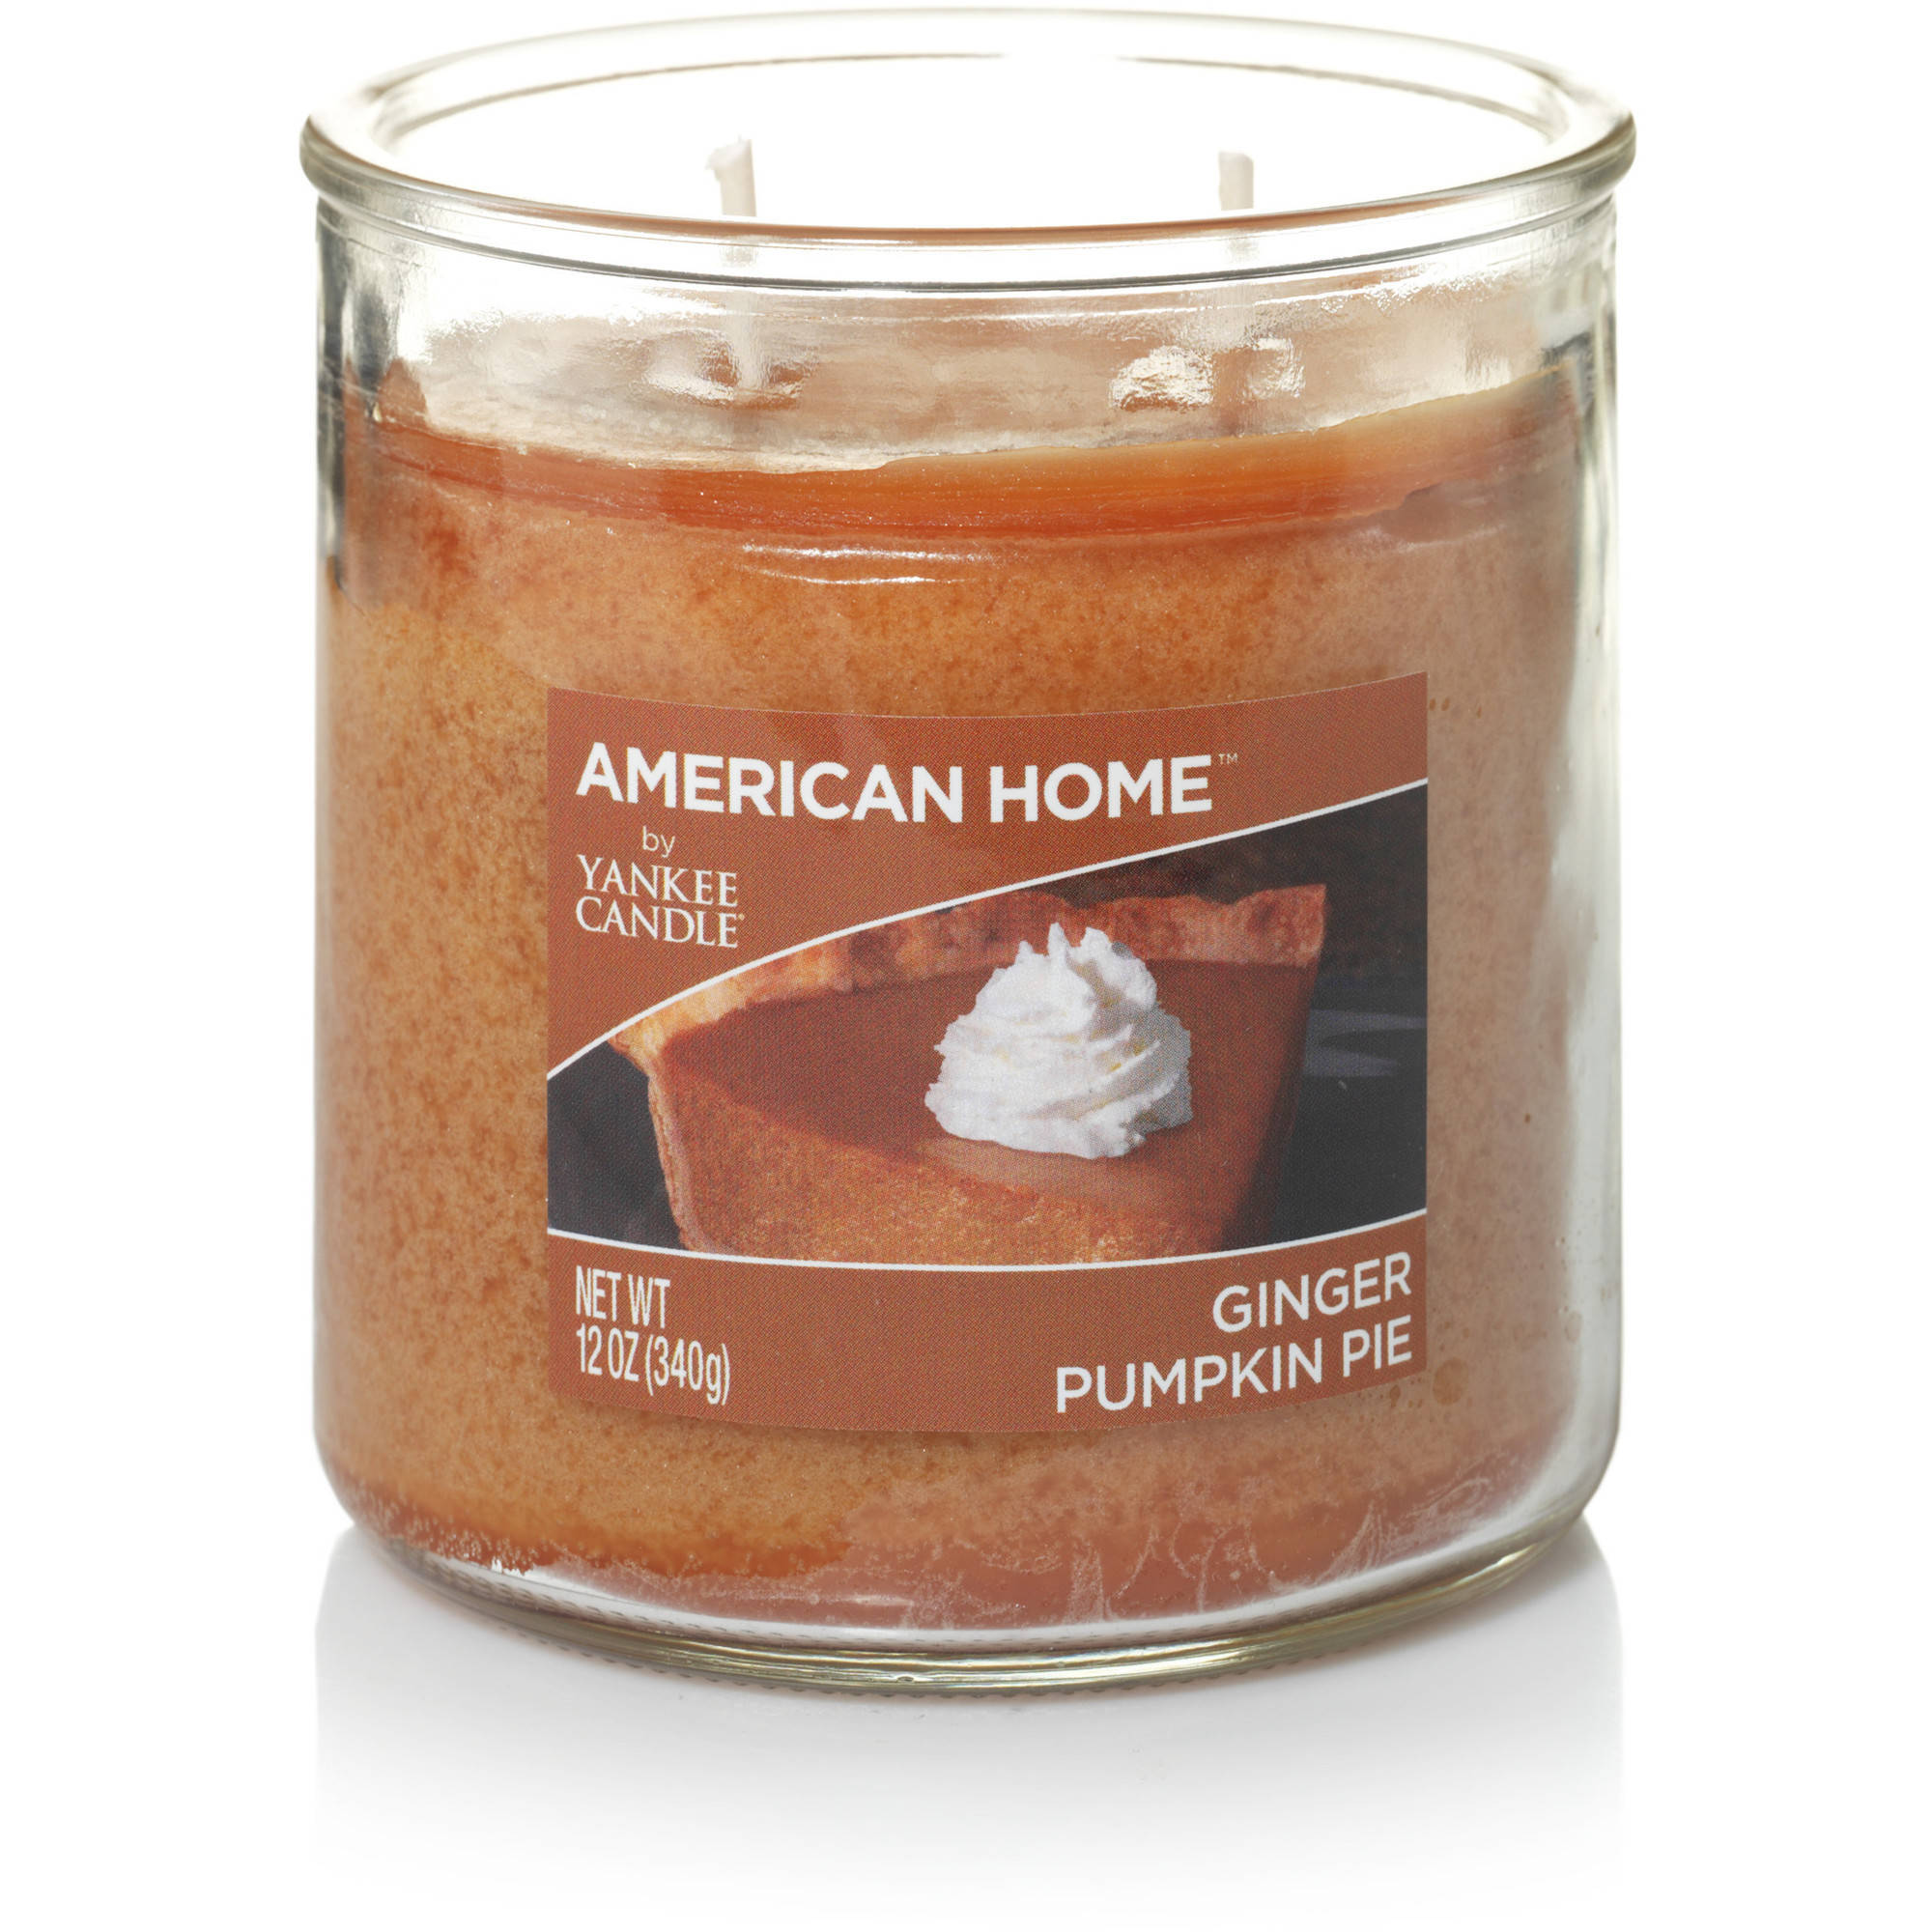 American Home by Yankee Candle Ginger Pumpkin Pie, 12 oz Medium 2-Wick Tumbler